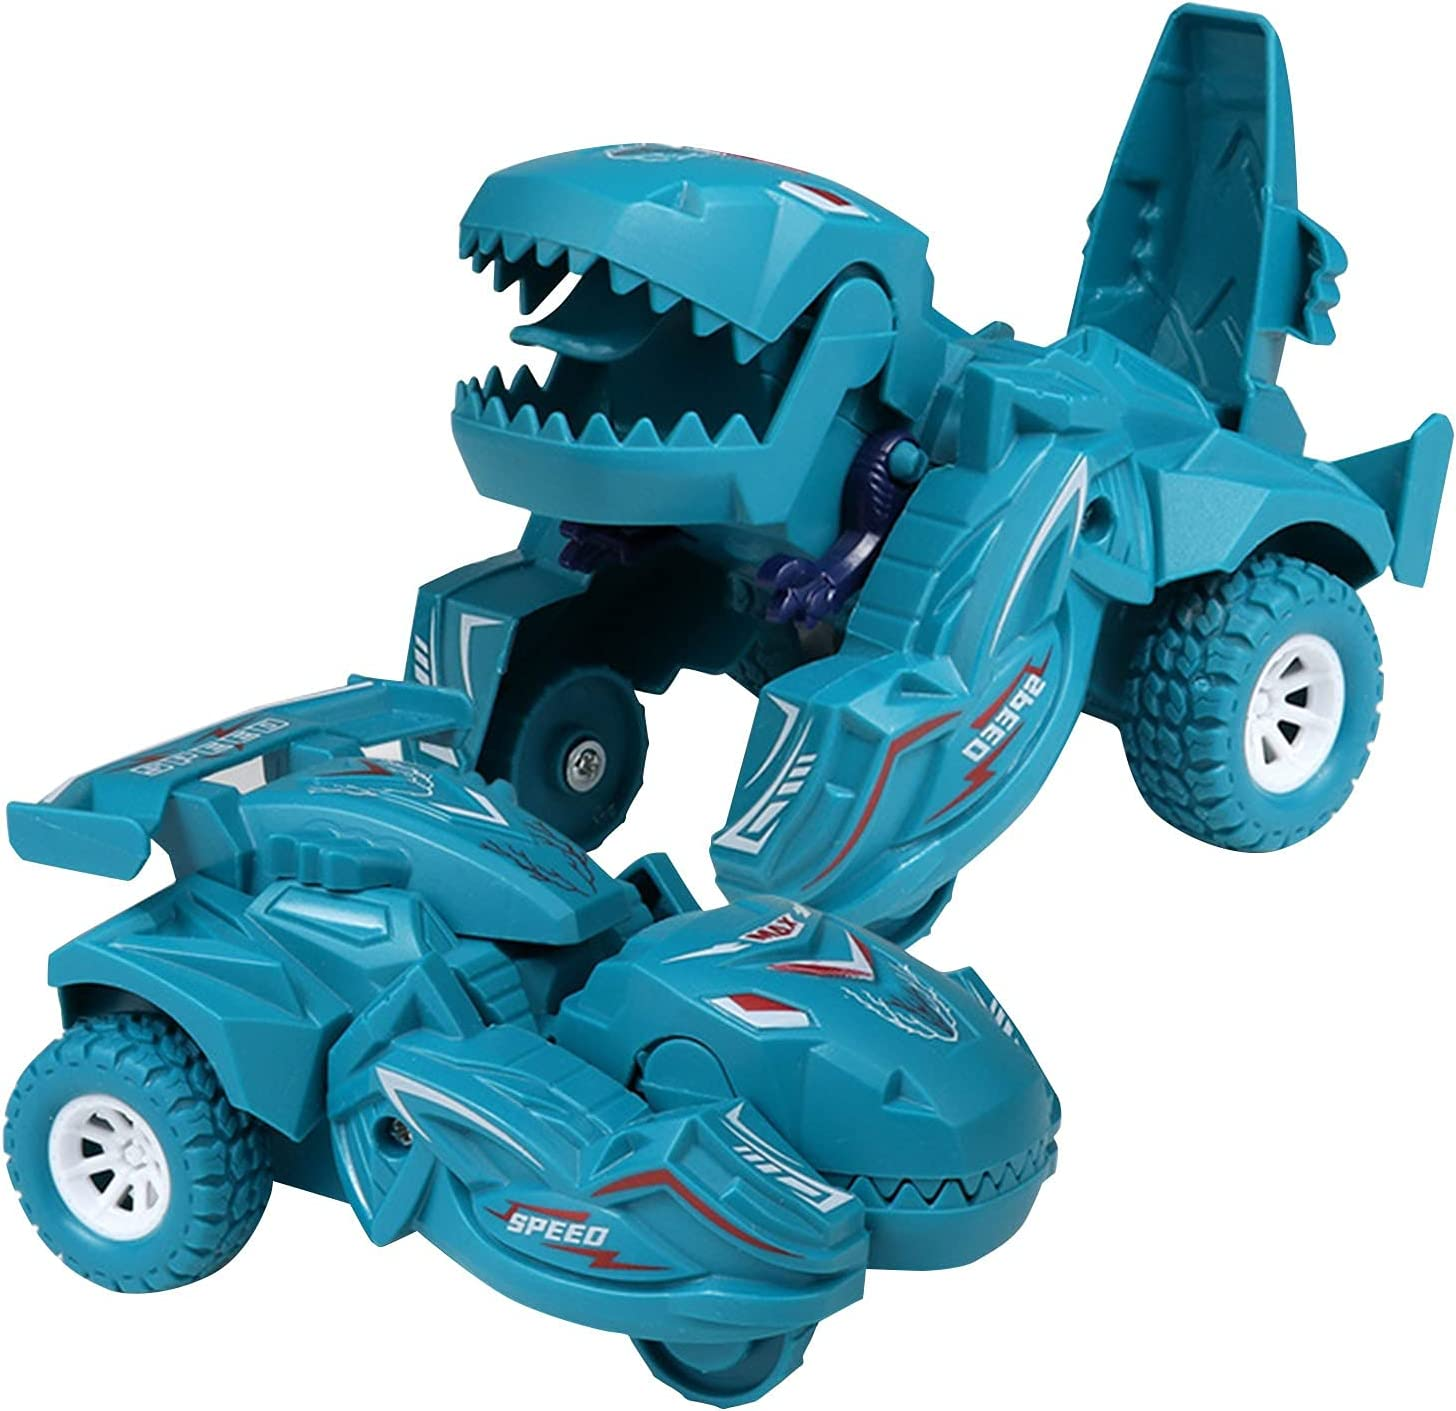 Creative and Interesting Dinosaur Transforming car New Complete Free Shipping York Mall Children's To